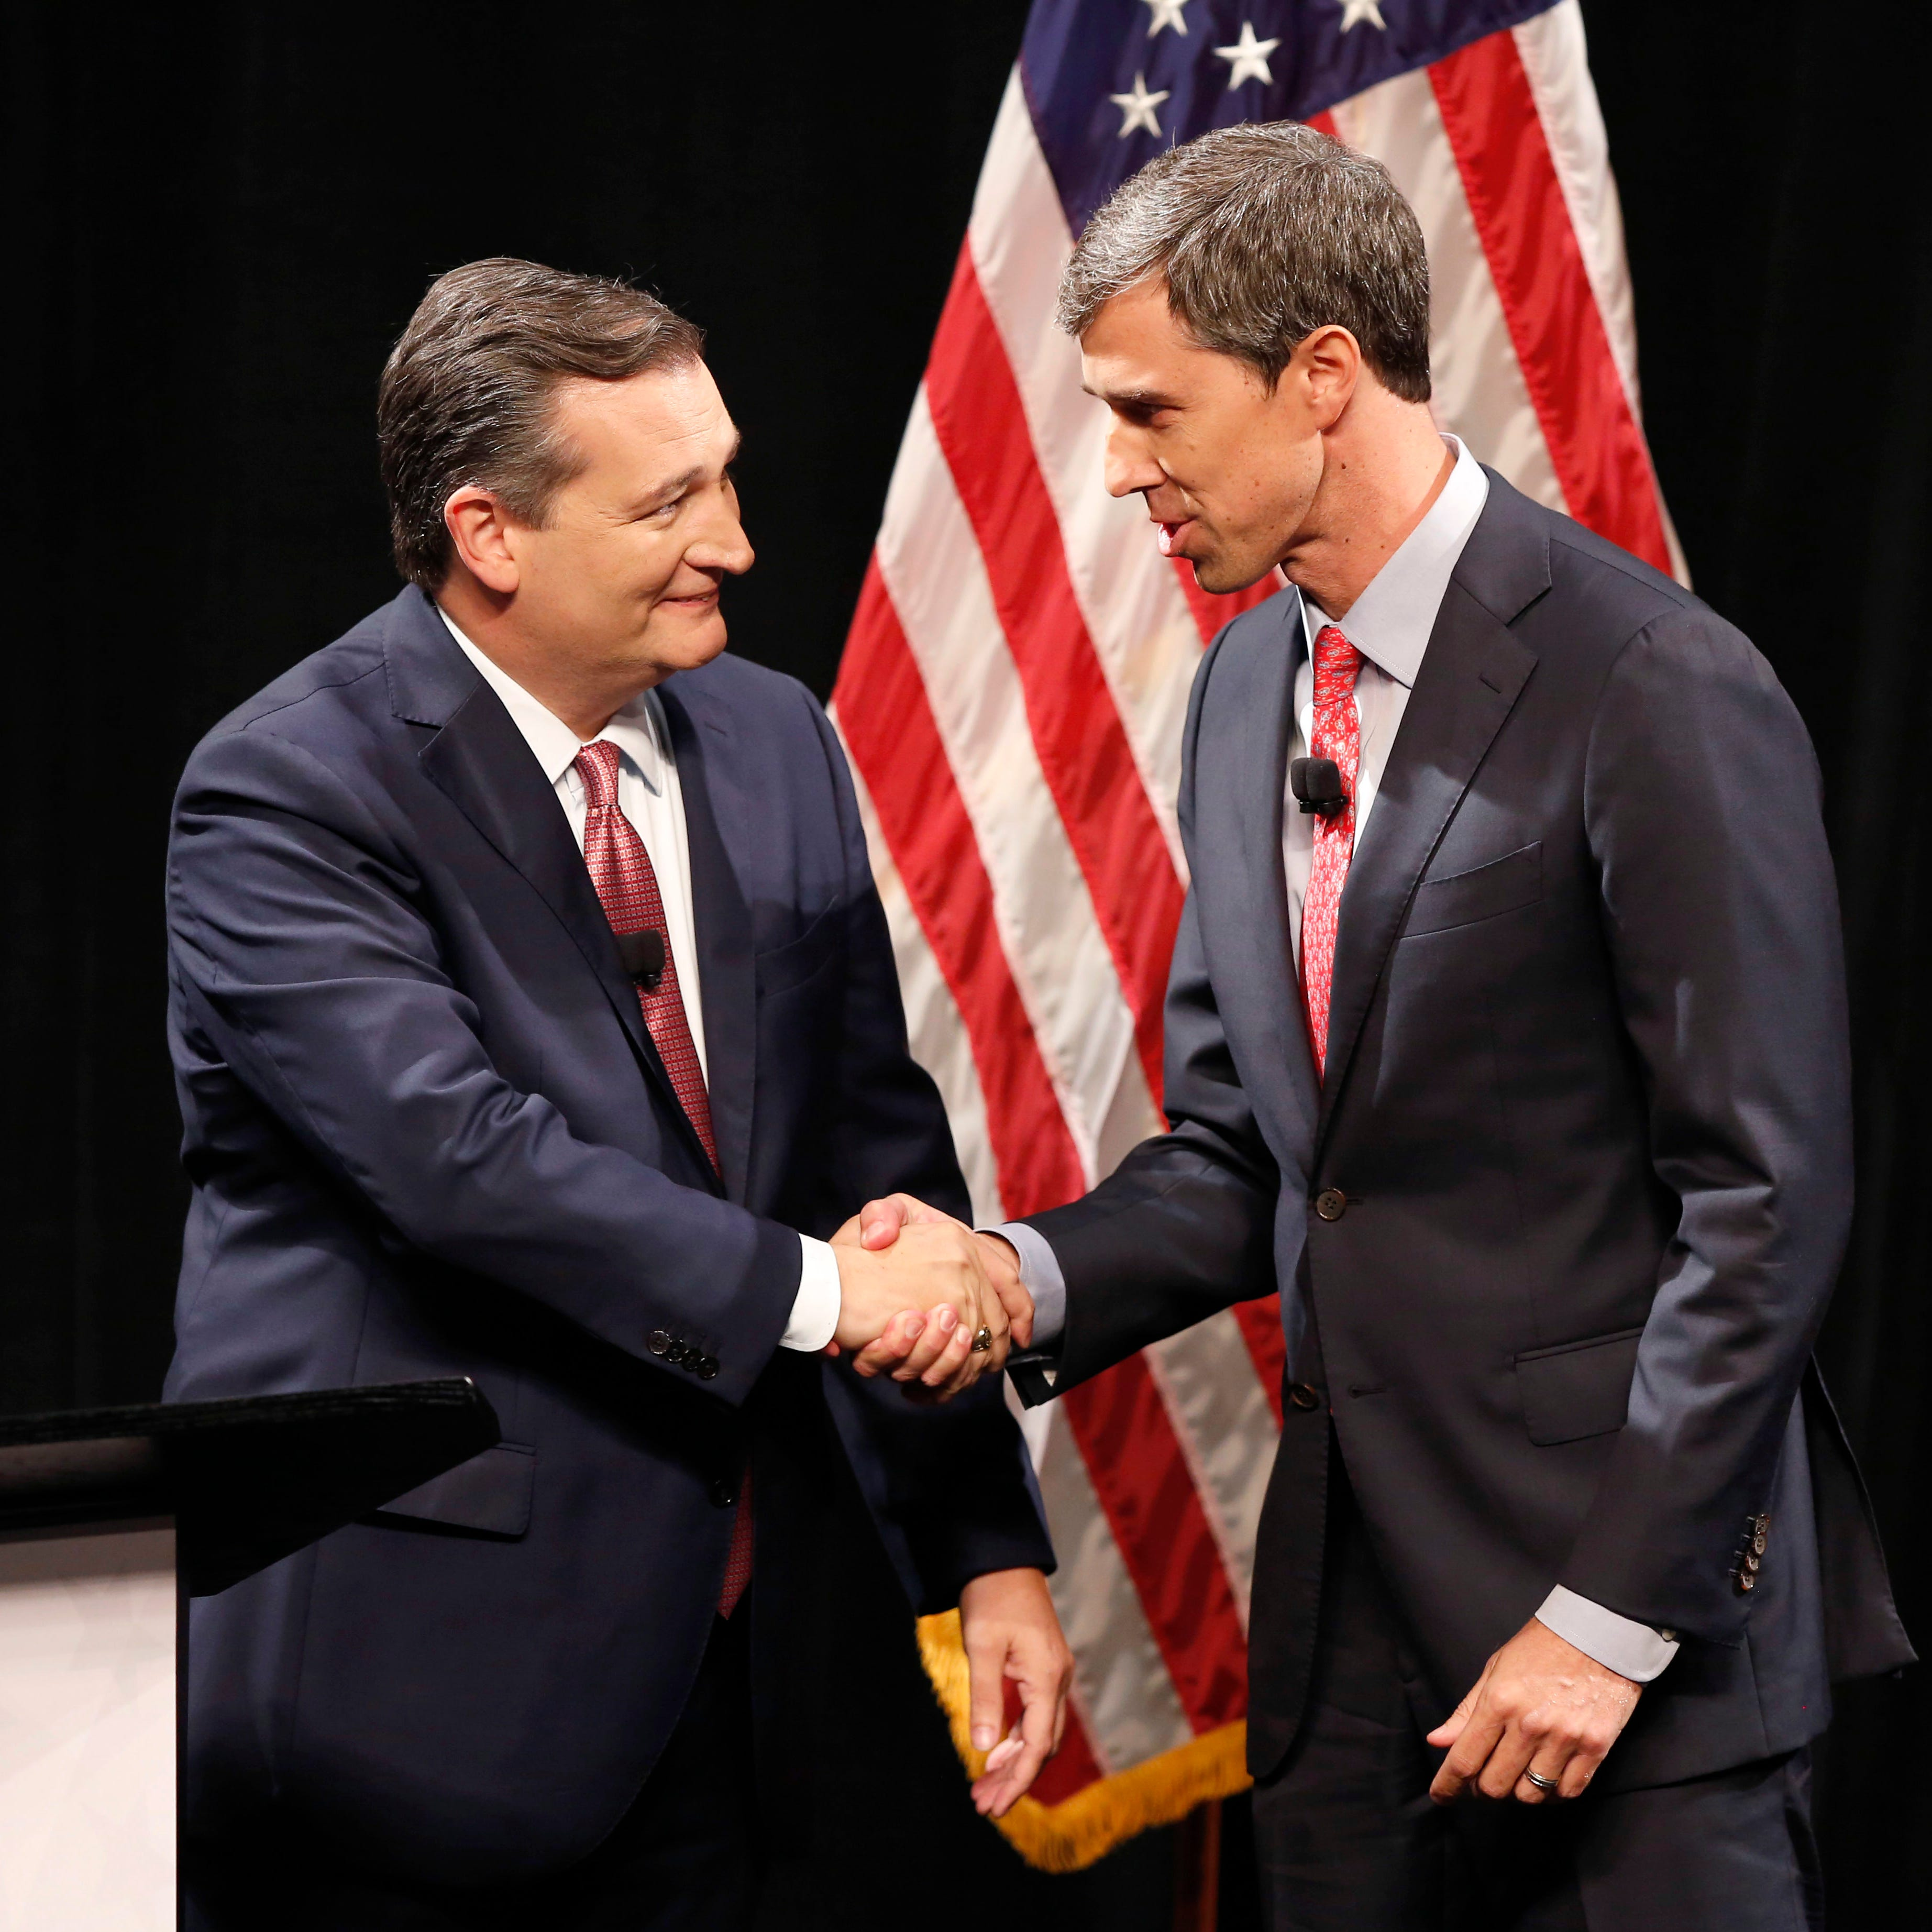 Experts say Ted Cruz wins first debate on style while Beto O'Rourke scores on likeability